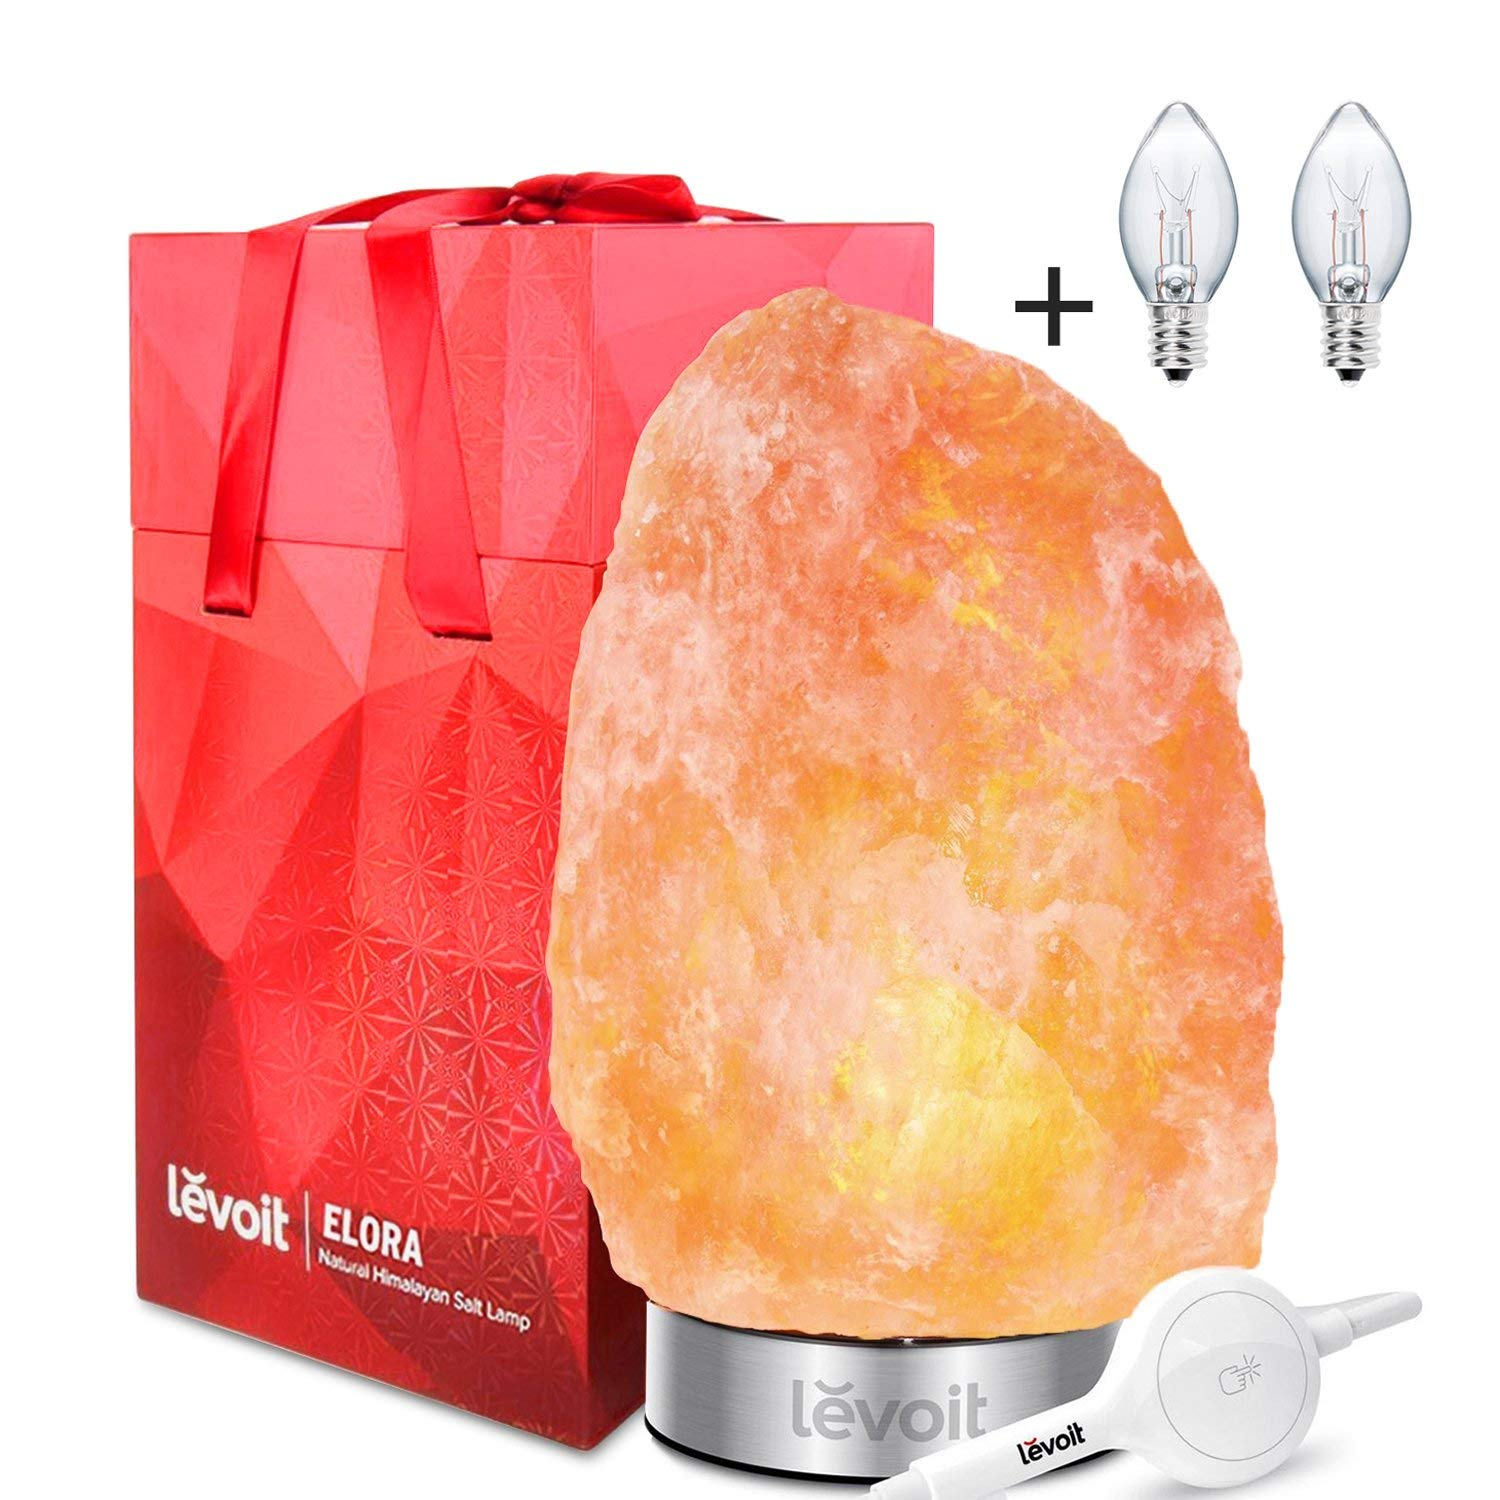 Levoit Elora Large Salt Lamp Pink Crystal Hand Carved Himalayan Salt Lamps with 18/8 Stainless Steel Base, Dimmable Touch Switch, Luxury Gift Box(UL-Listed, 2 Extra Original Bulbs Included)